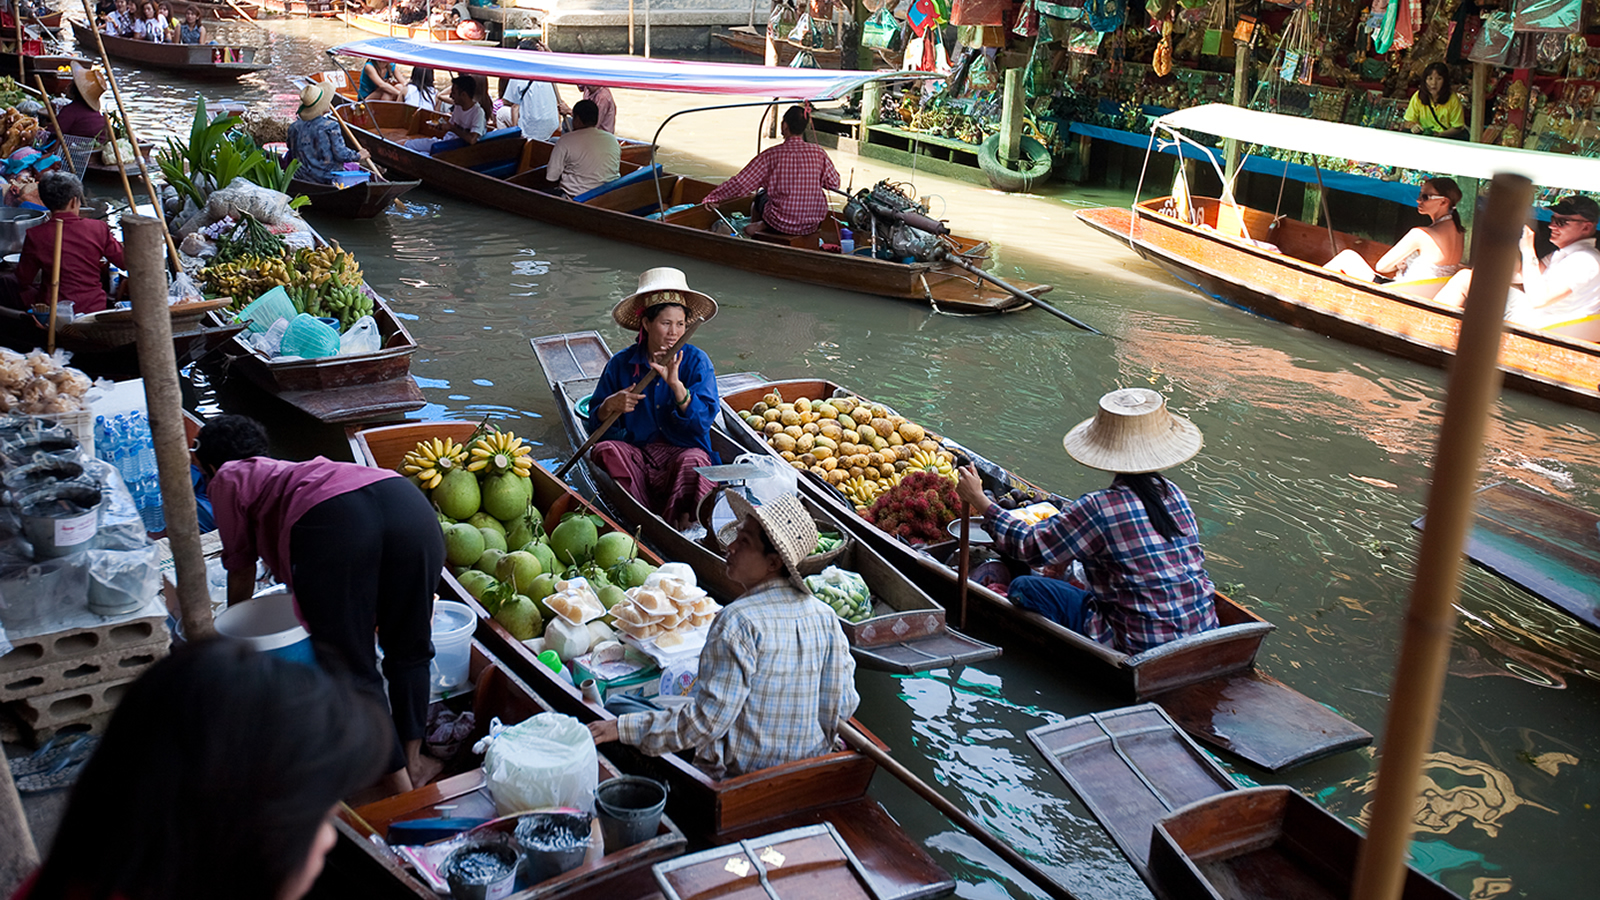 Market Vendors Selling Fruit from Boats